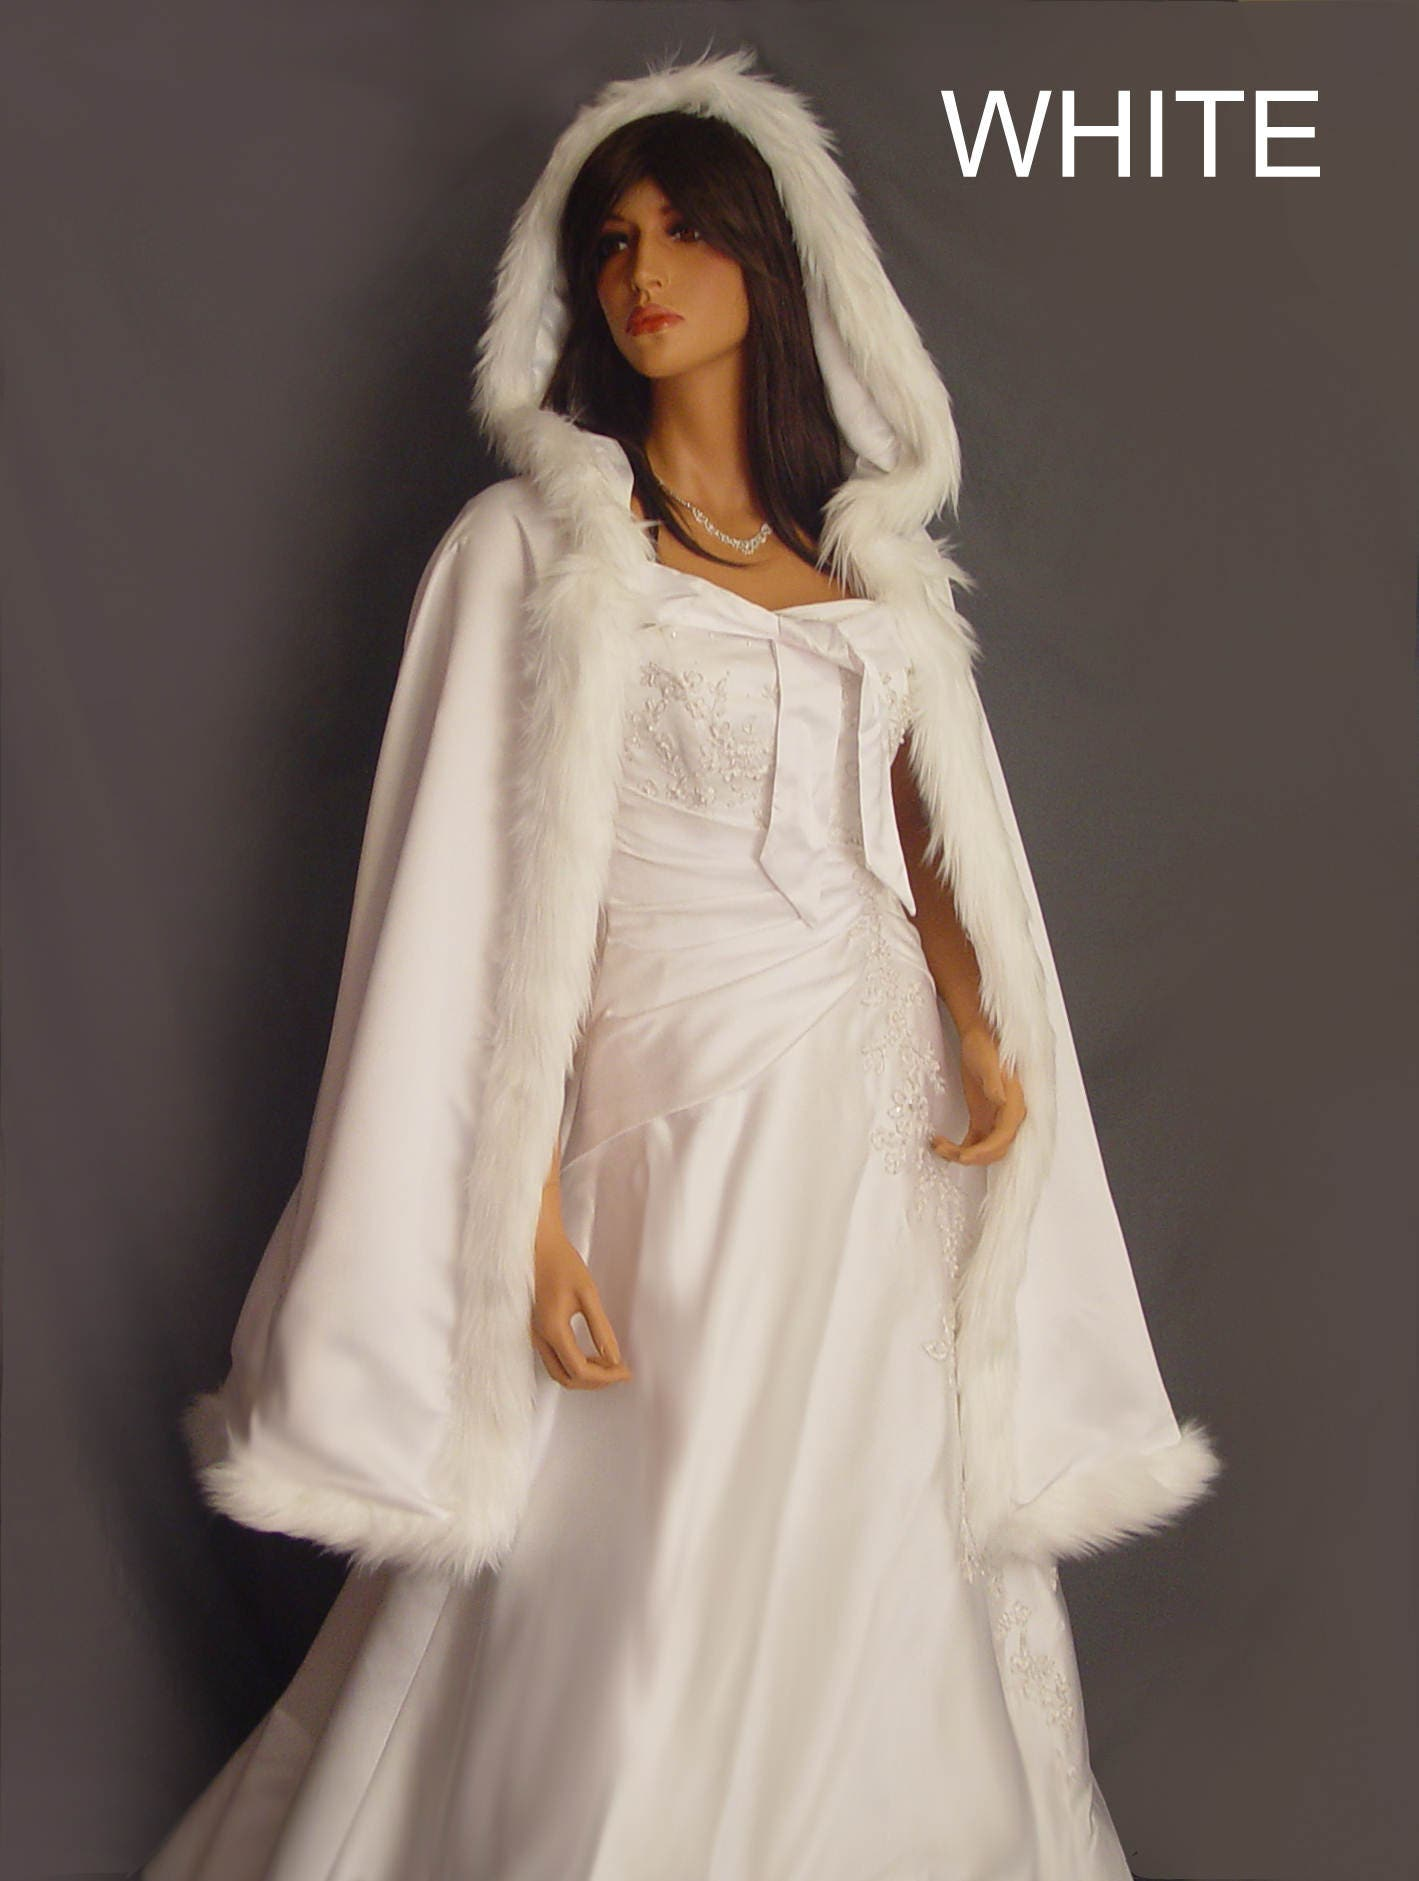 Fur trim satin cloak cape shawl cover wedding coat renaissance bridal mid length medieval wrap Available in white, ivory